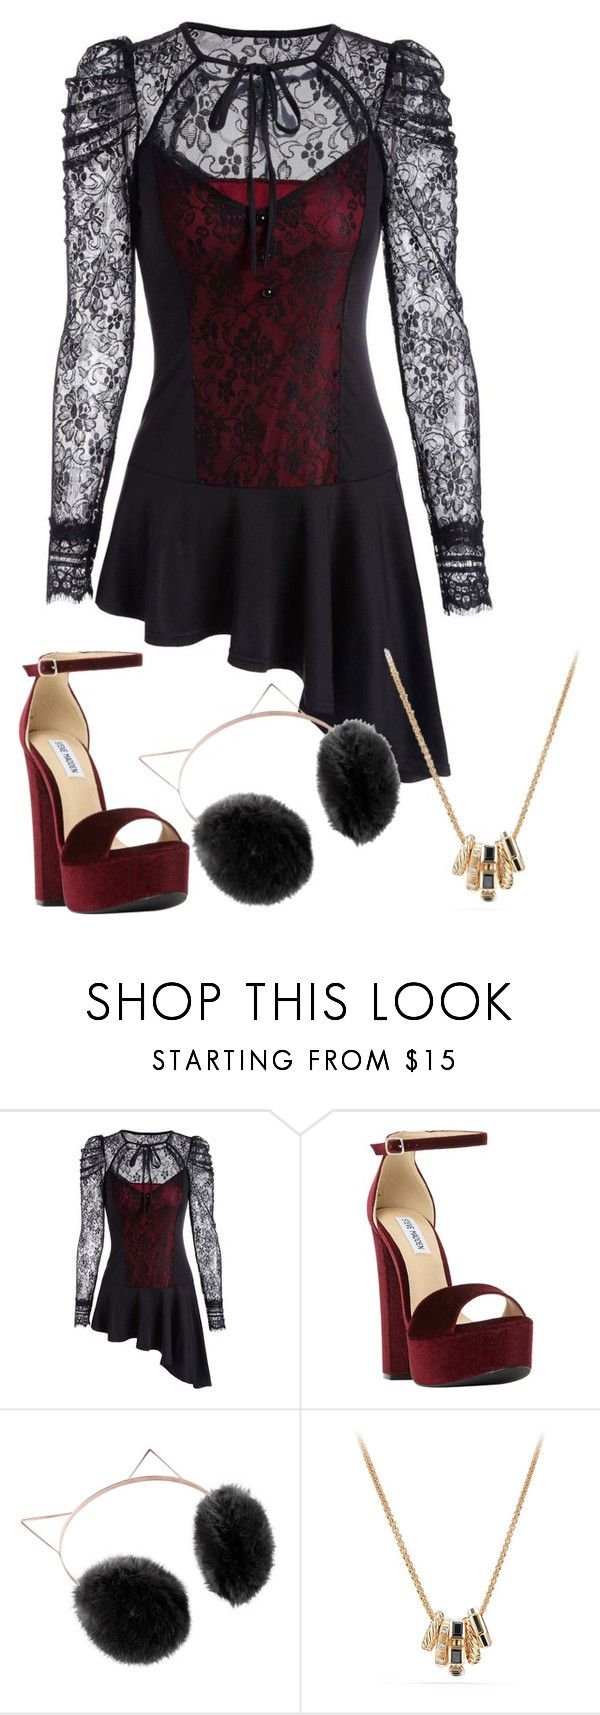 """""""SHOCK"""" by aleksova ❤ liked on Polyvore featuring Steve Madden, LC Lauren Conrad and David Yurman"""